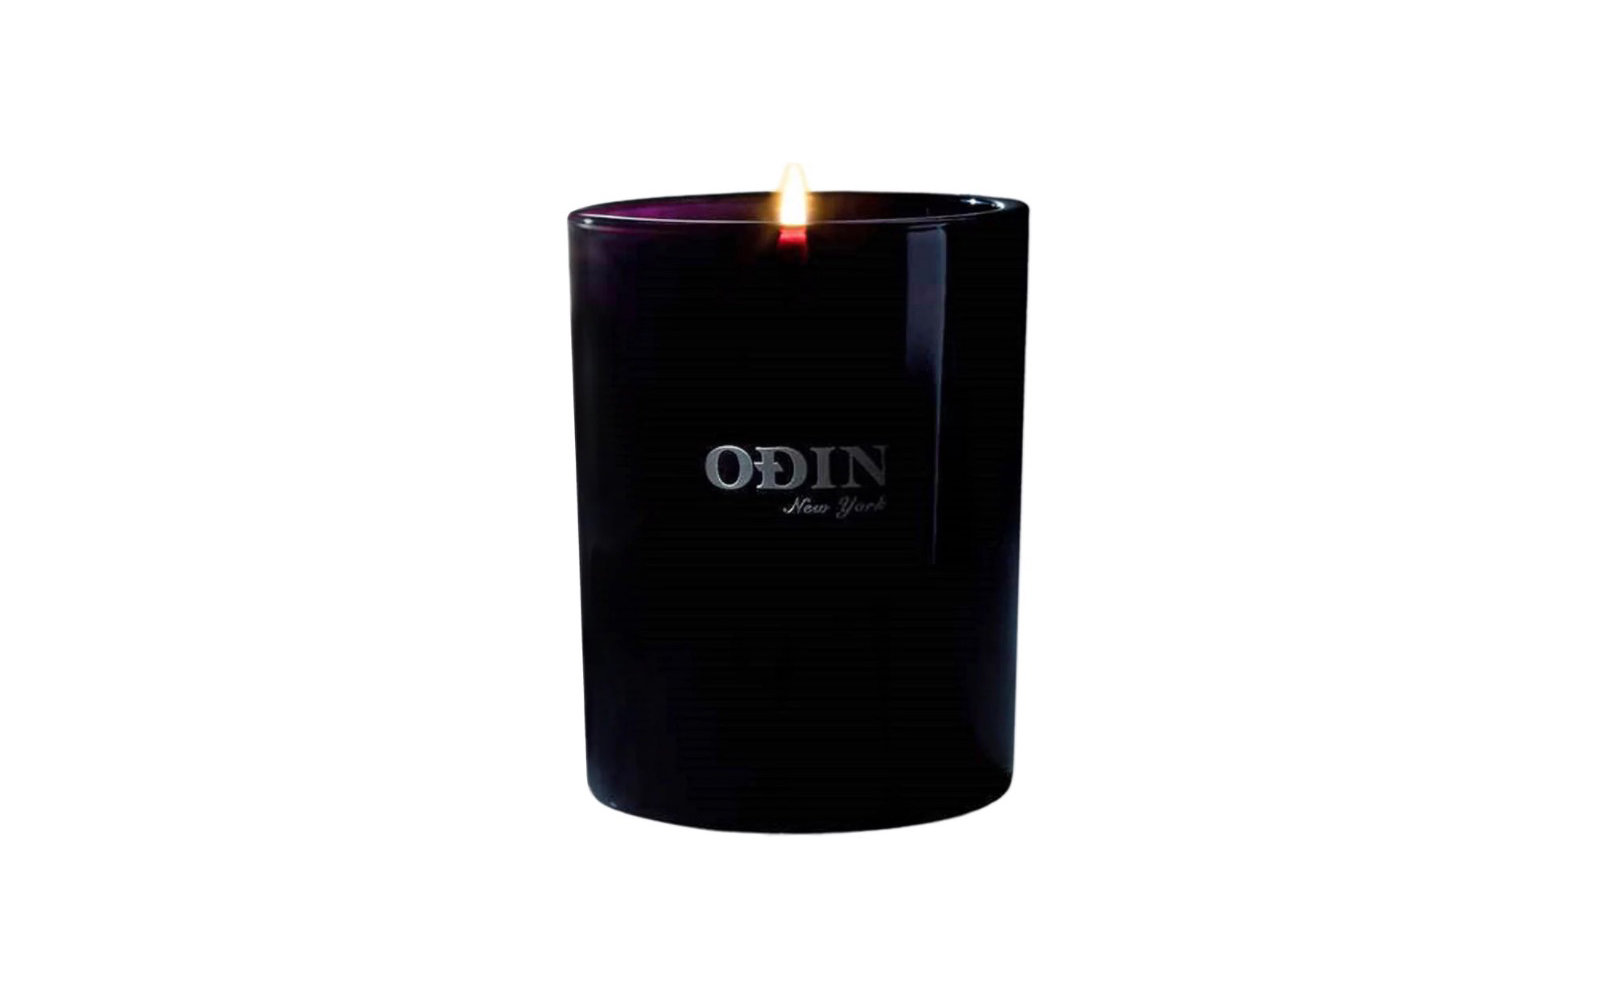 Barneys Odin New York Votive Candle